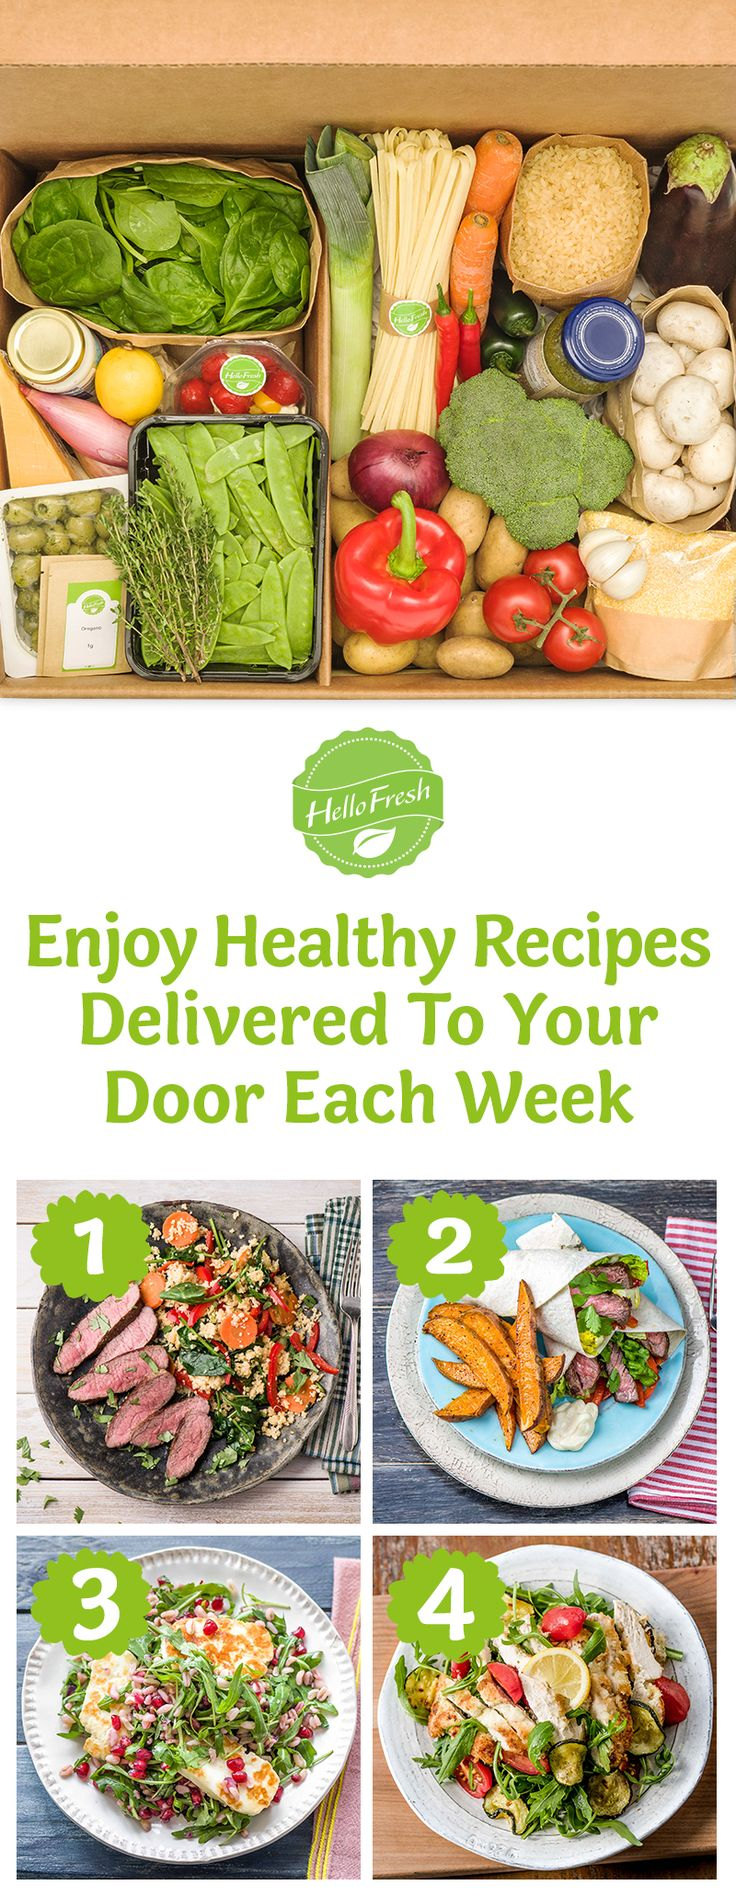 1st step to eating and feeling healthier is as easy as your 1st HelloFresh Box! ➜ Use code HELLOPIN35 at checkout to save $35 on your 1st box! We deliver delicious recipes with all the pre-measured ingredients to your door each week. Ends 30/4/16.